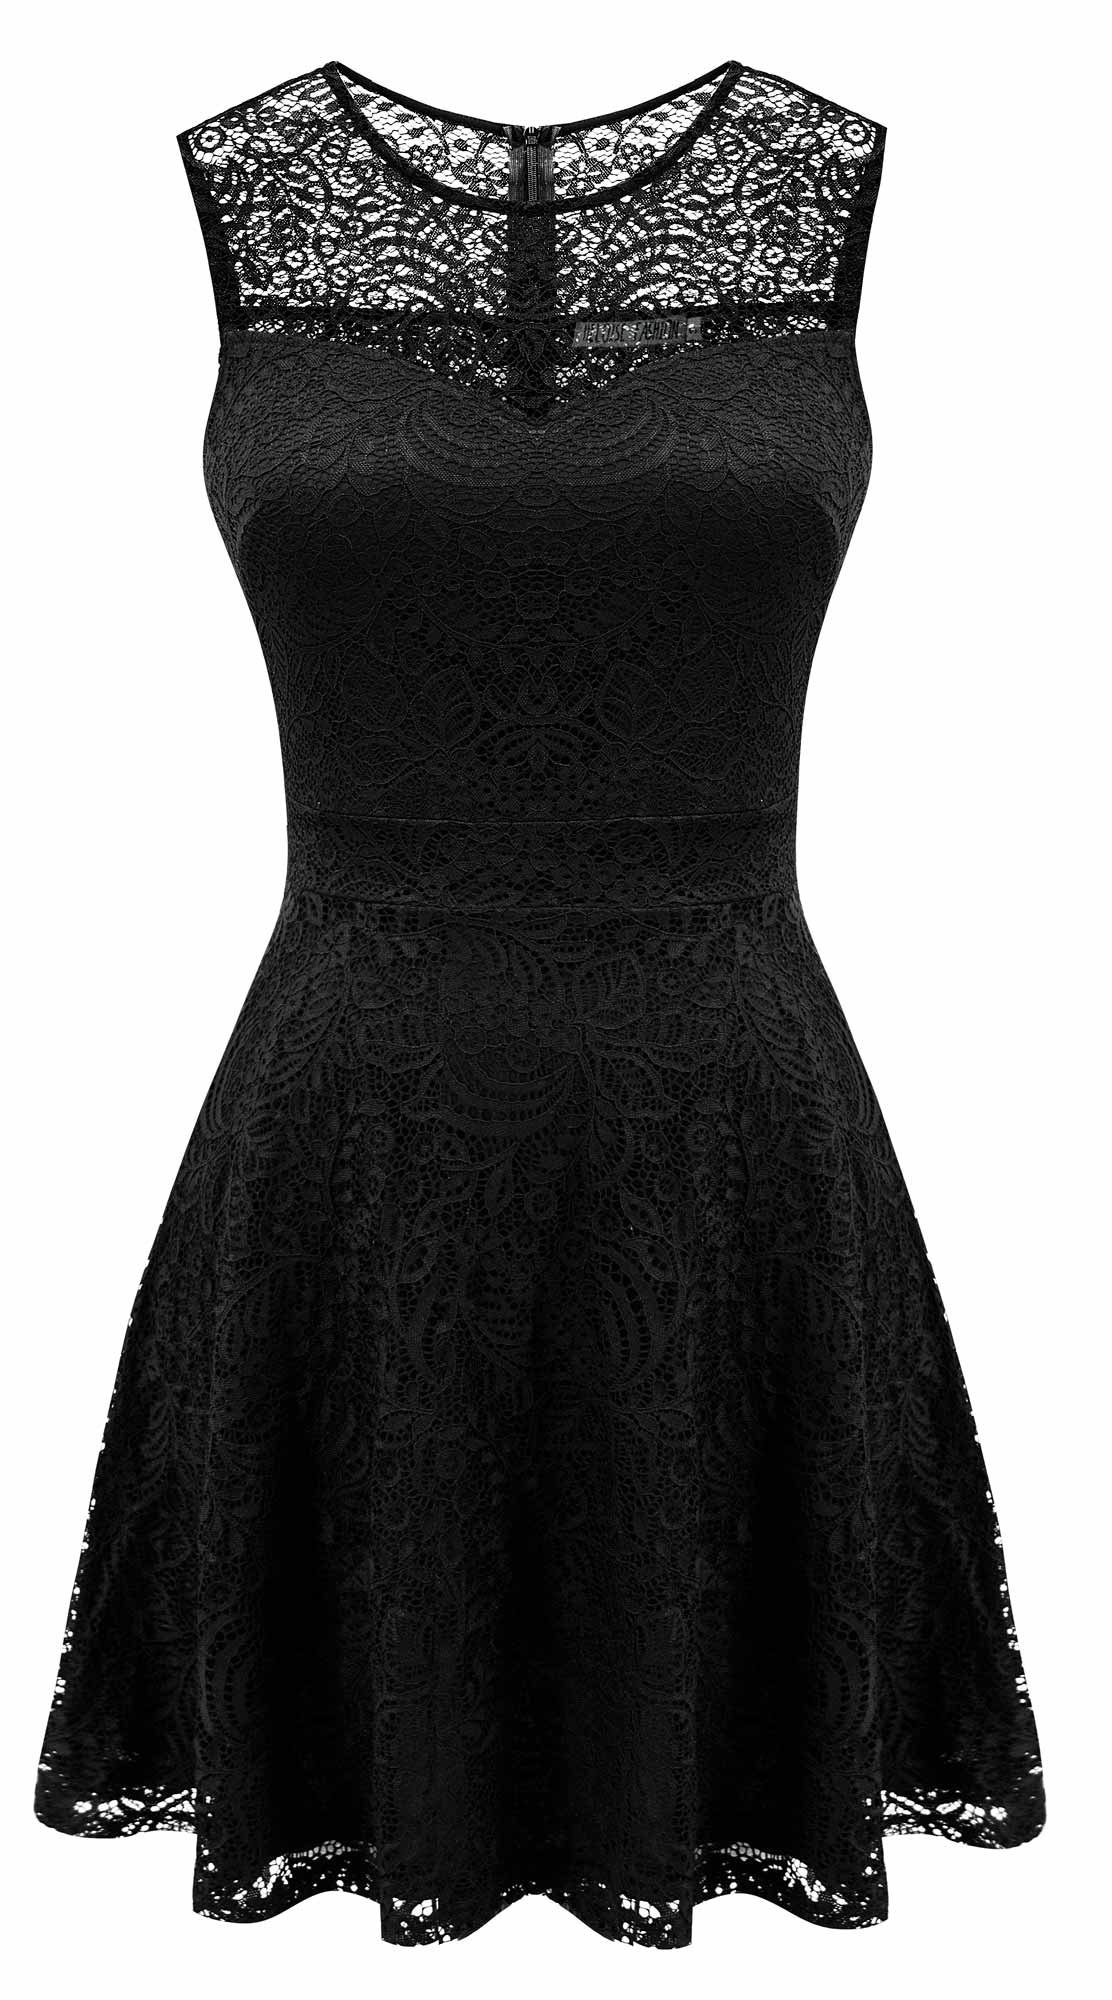 Sylvestidoso Women's A-Line Sleeveless Pleated Little Black Cocktail Party Dress Full Lace (M, Black)